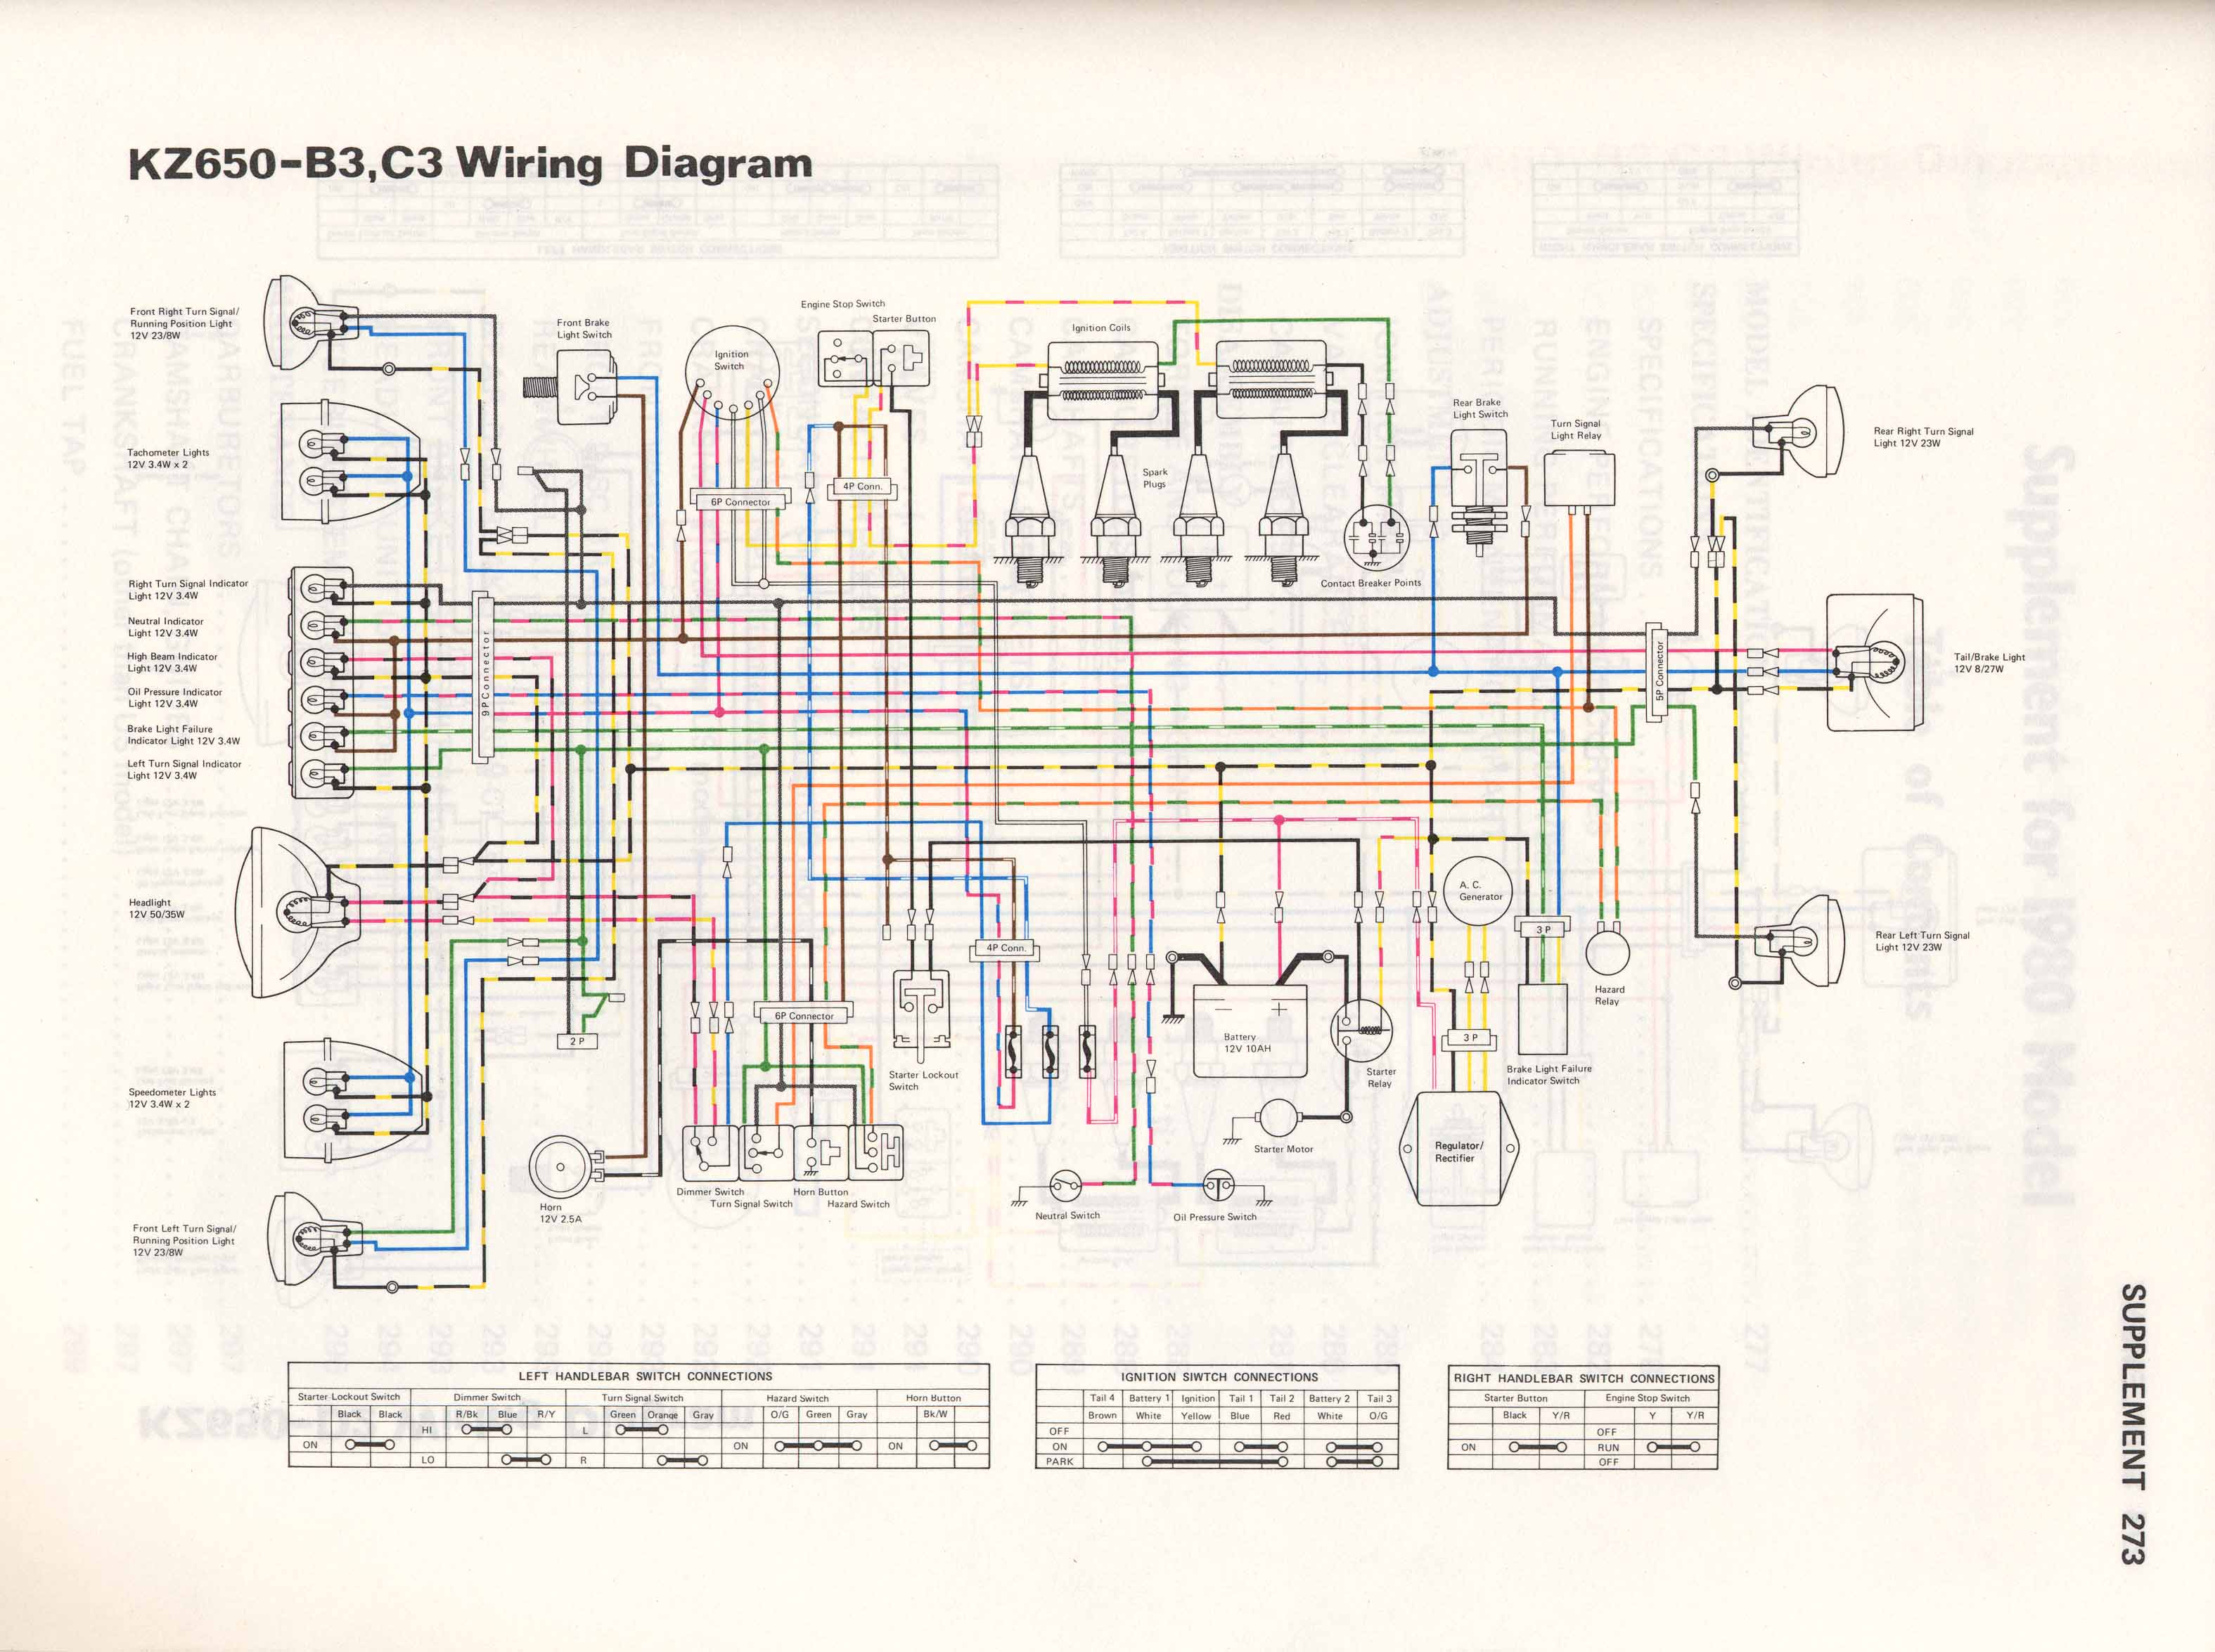 1978 z650 wiring diagram circuit kz650 info c3 model